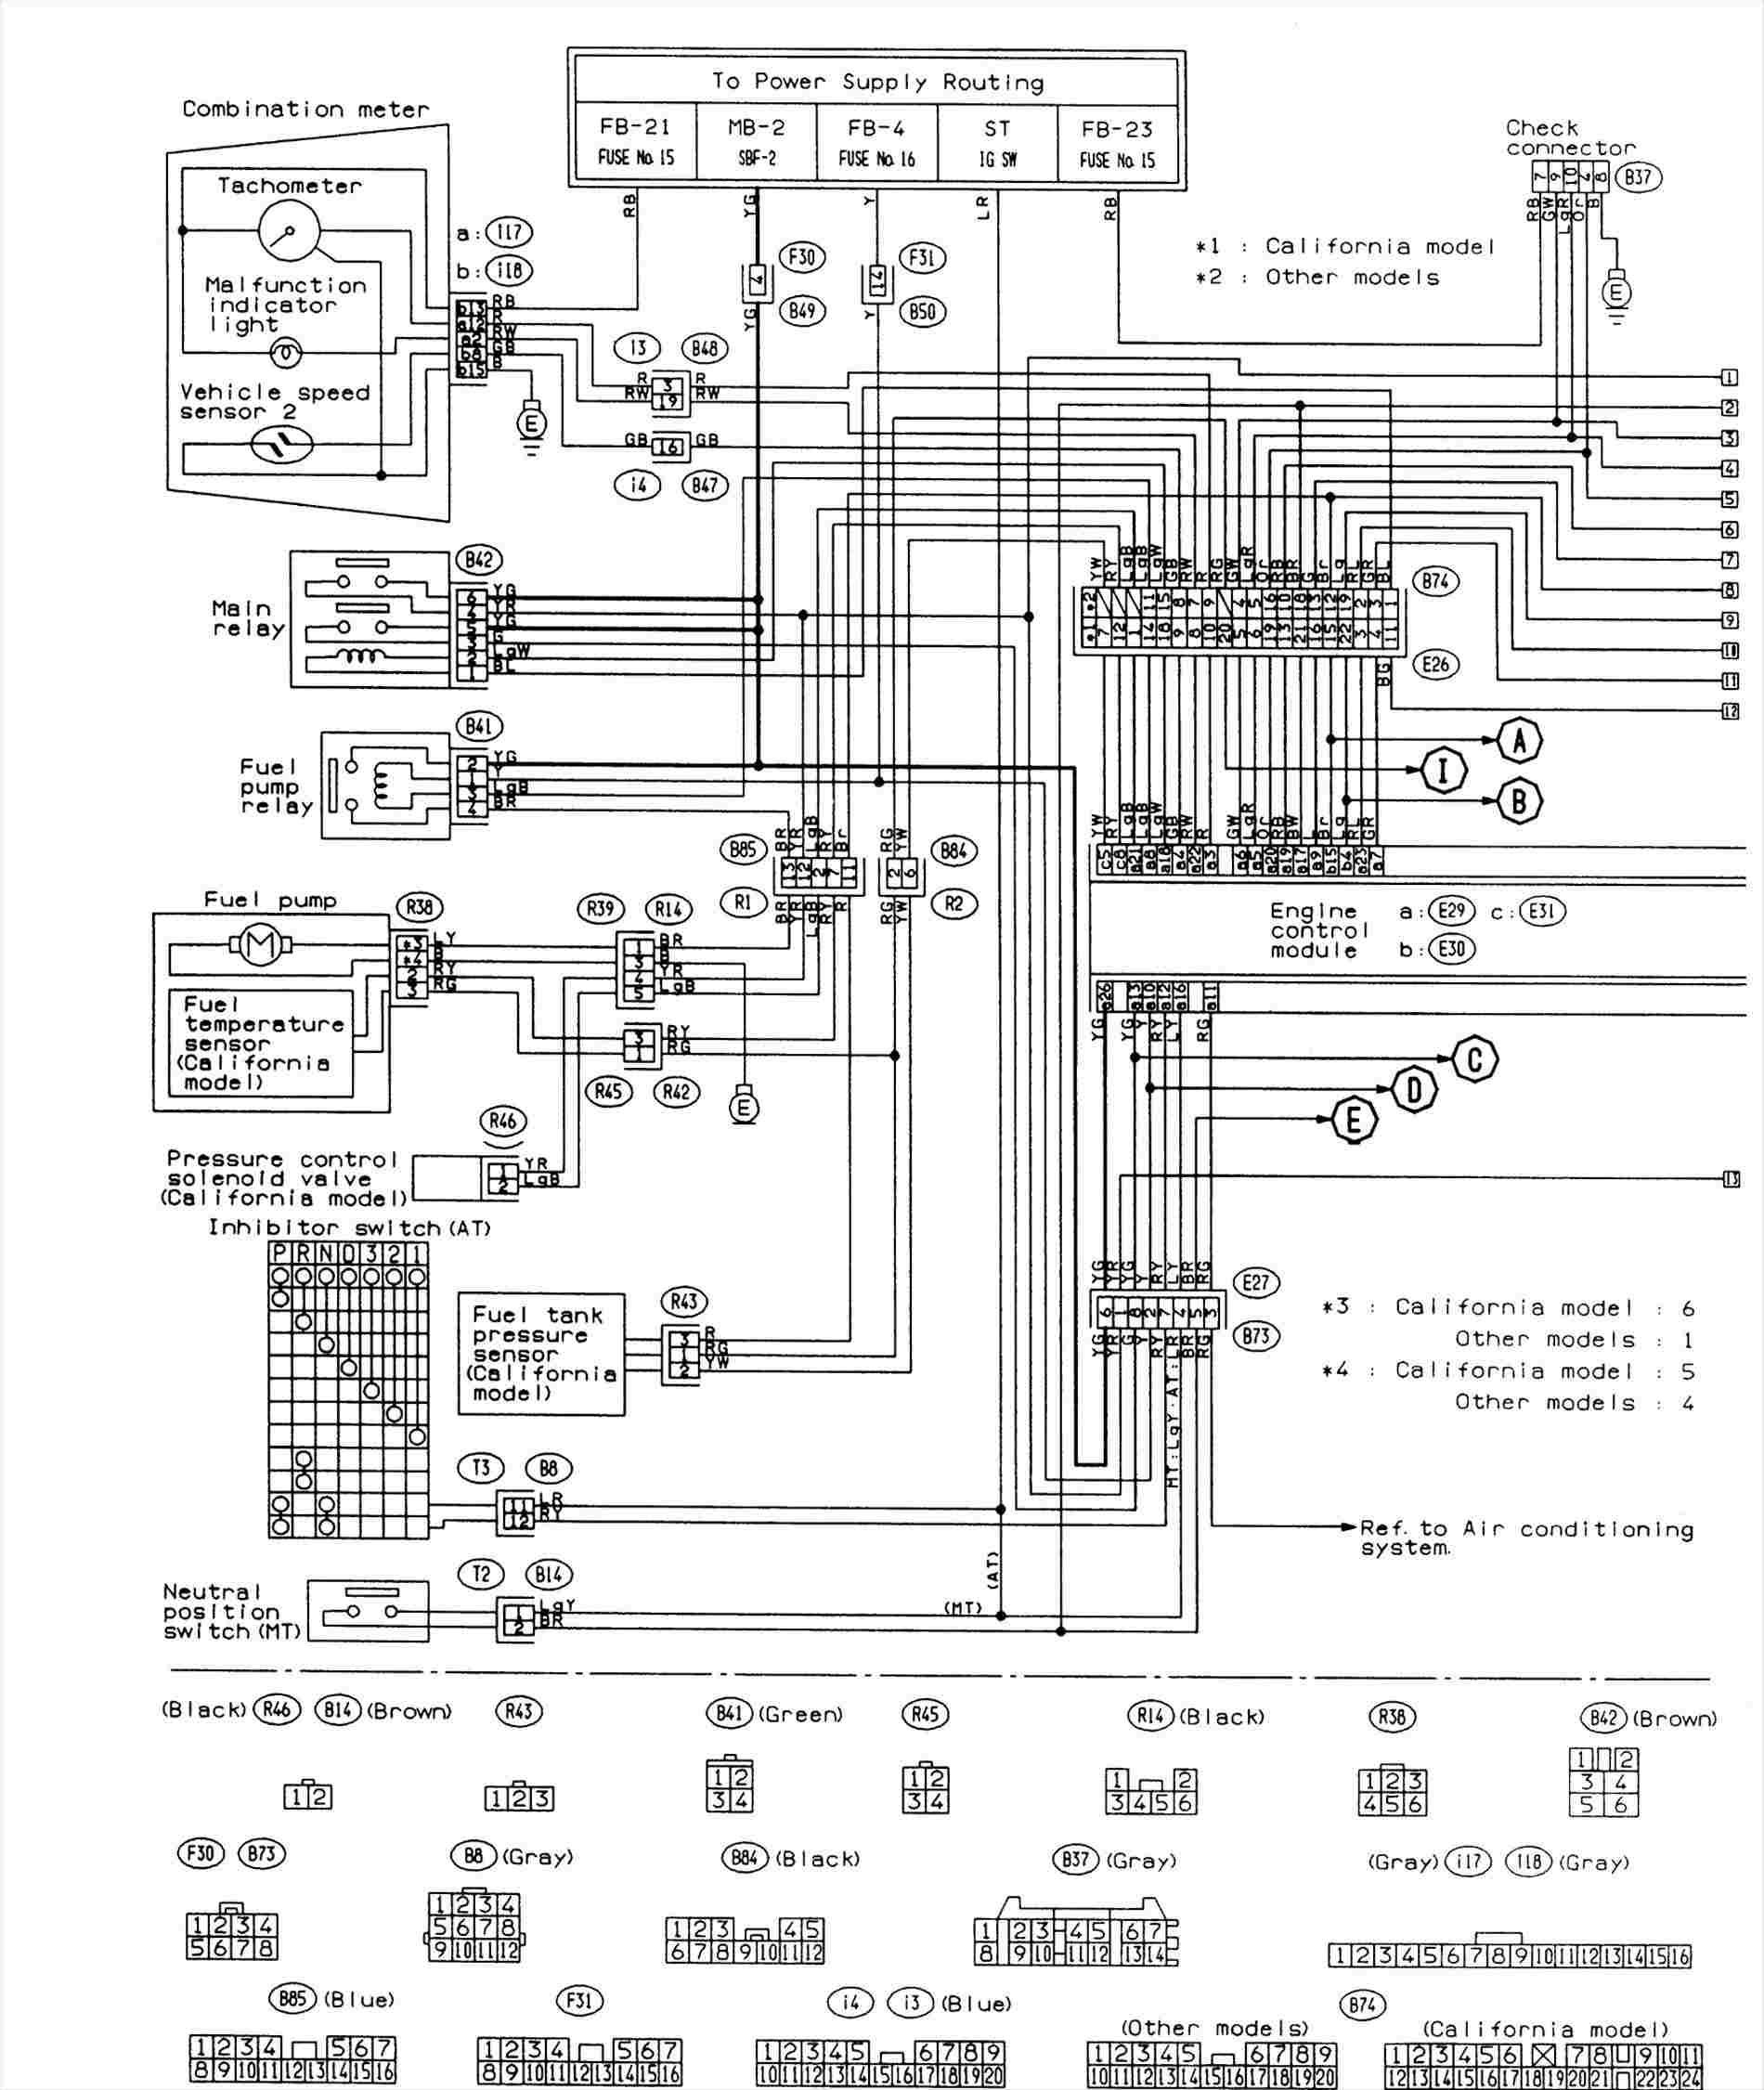 The Best 12 Way To Read Auto Wiring Diagrams Ideas   S